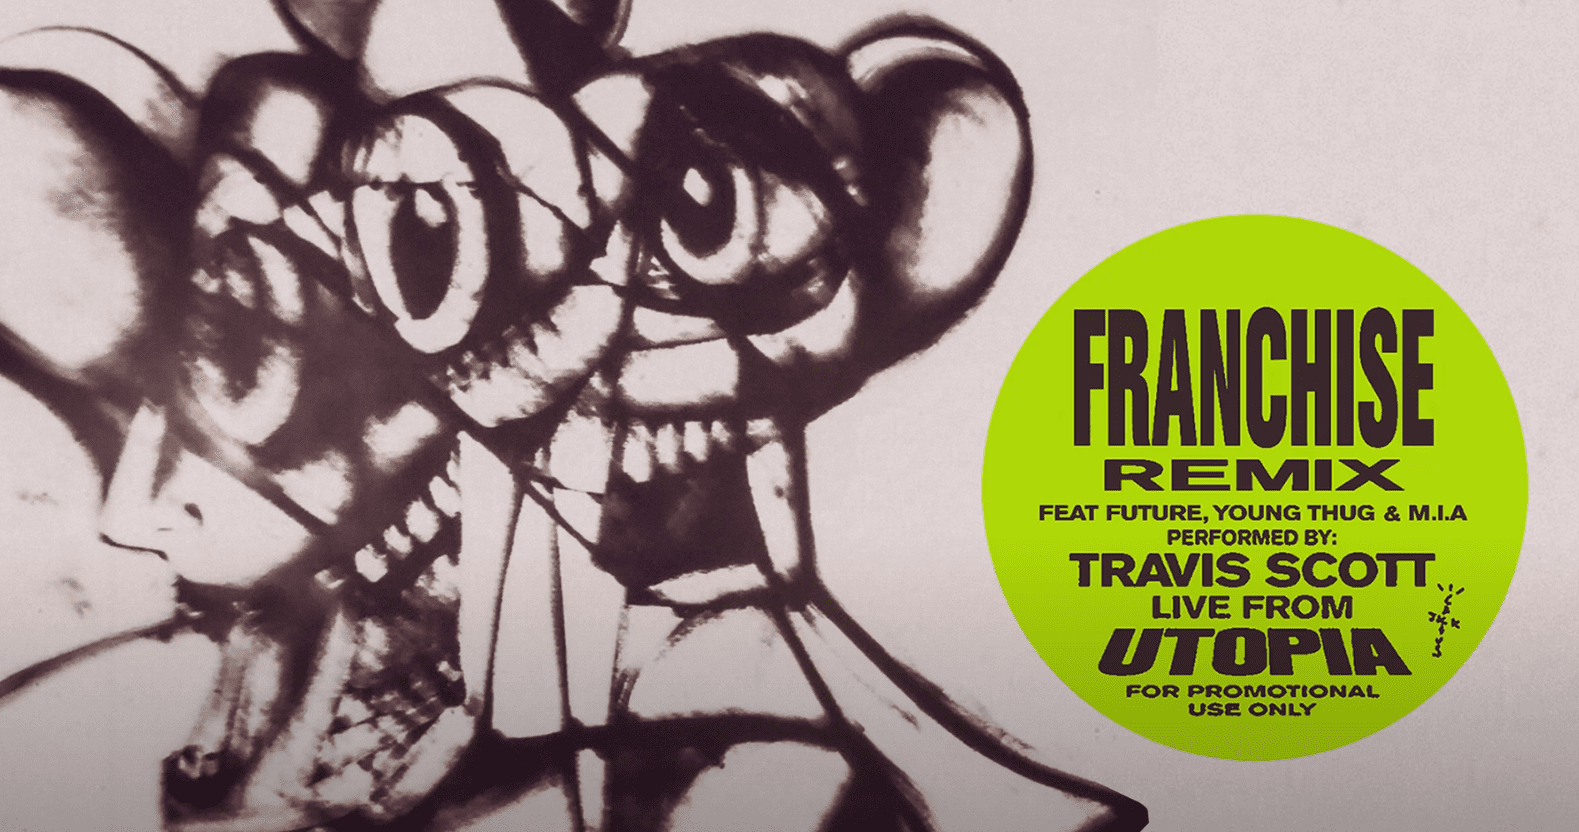 Travis Scott feat. Future, Young Thug & M.I.A. - FRANCHISE